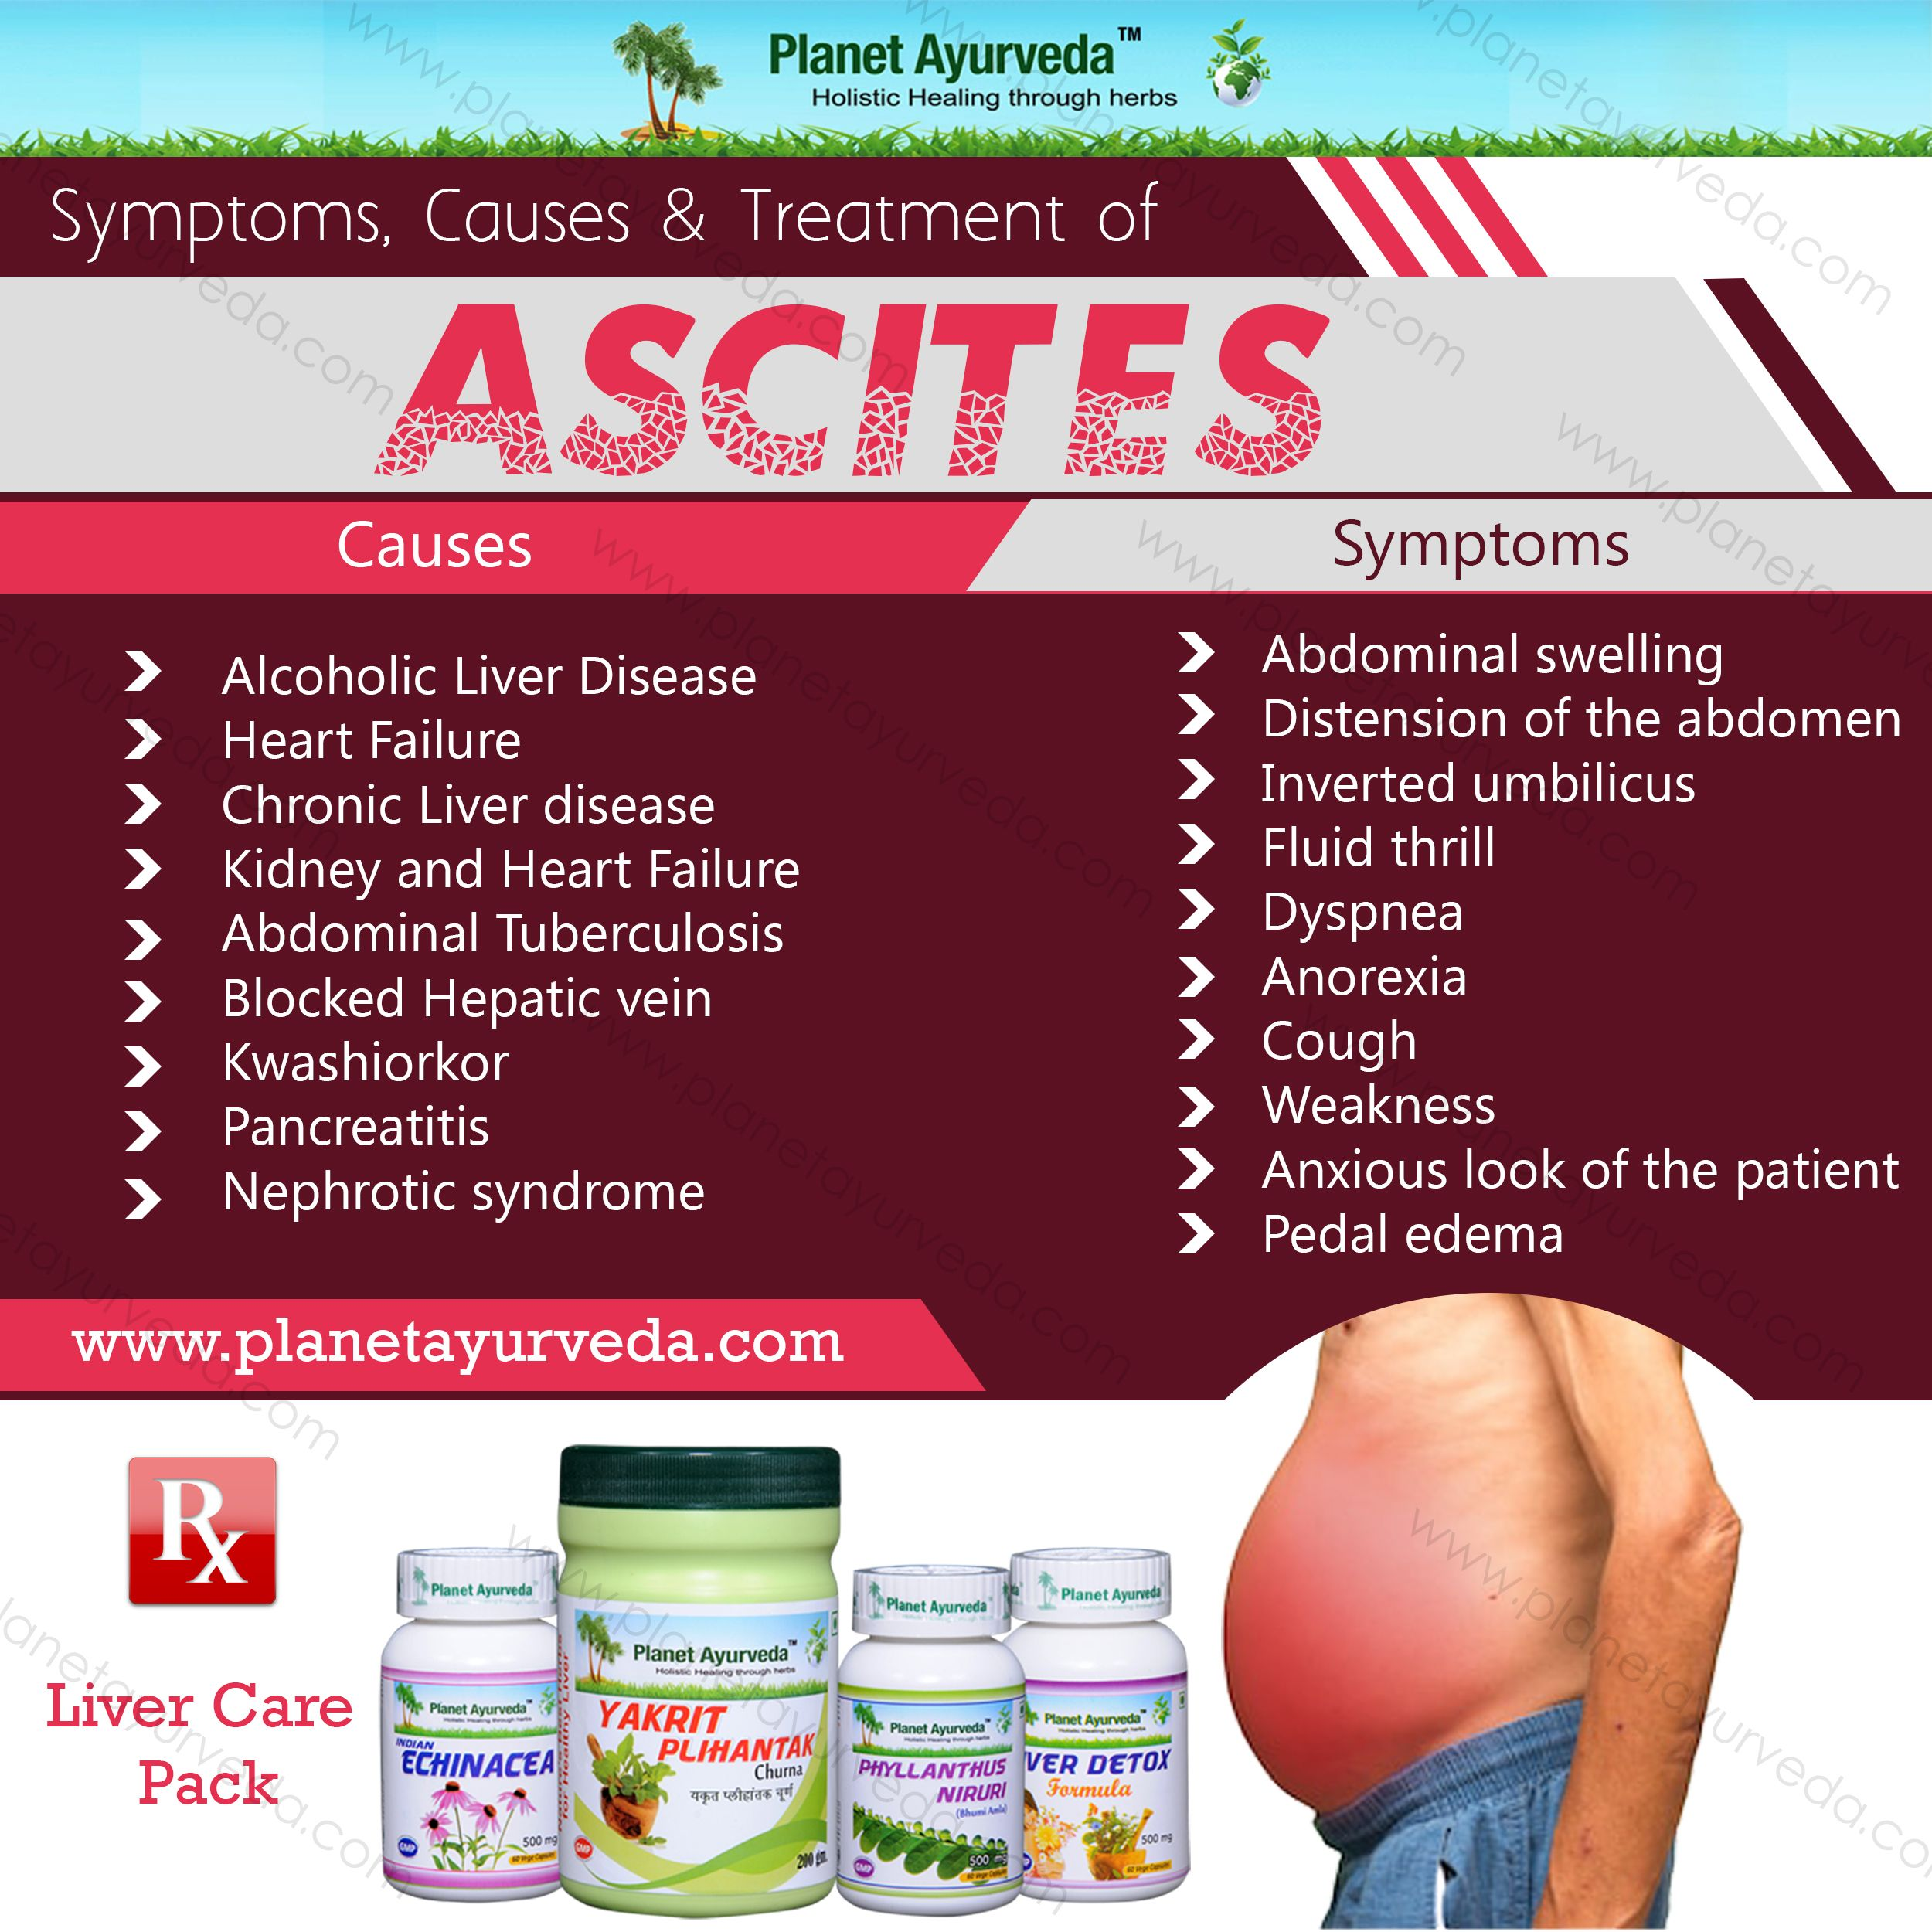 ascites is a very nasty condition related to the gastrointestinal